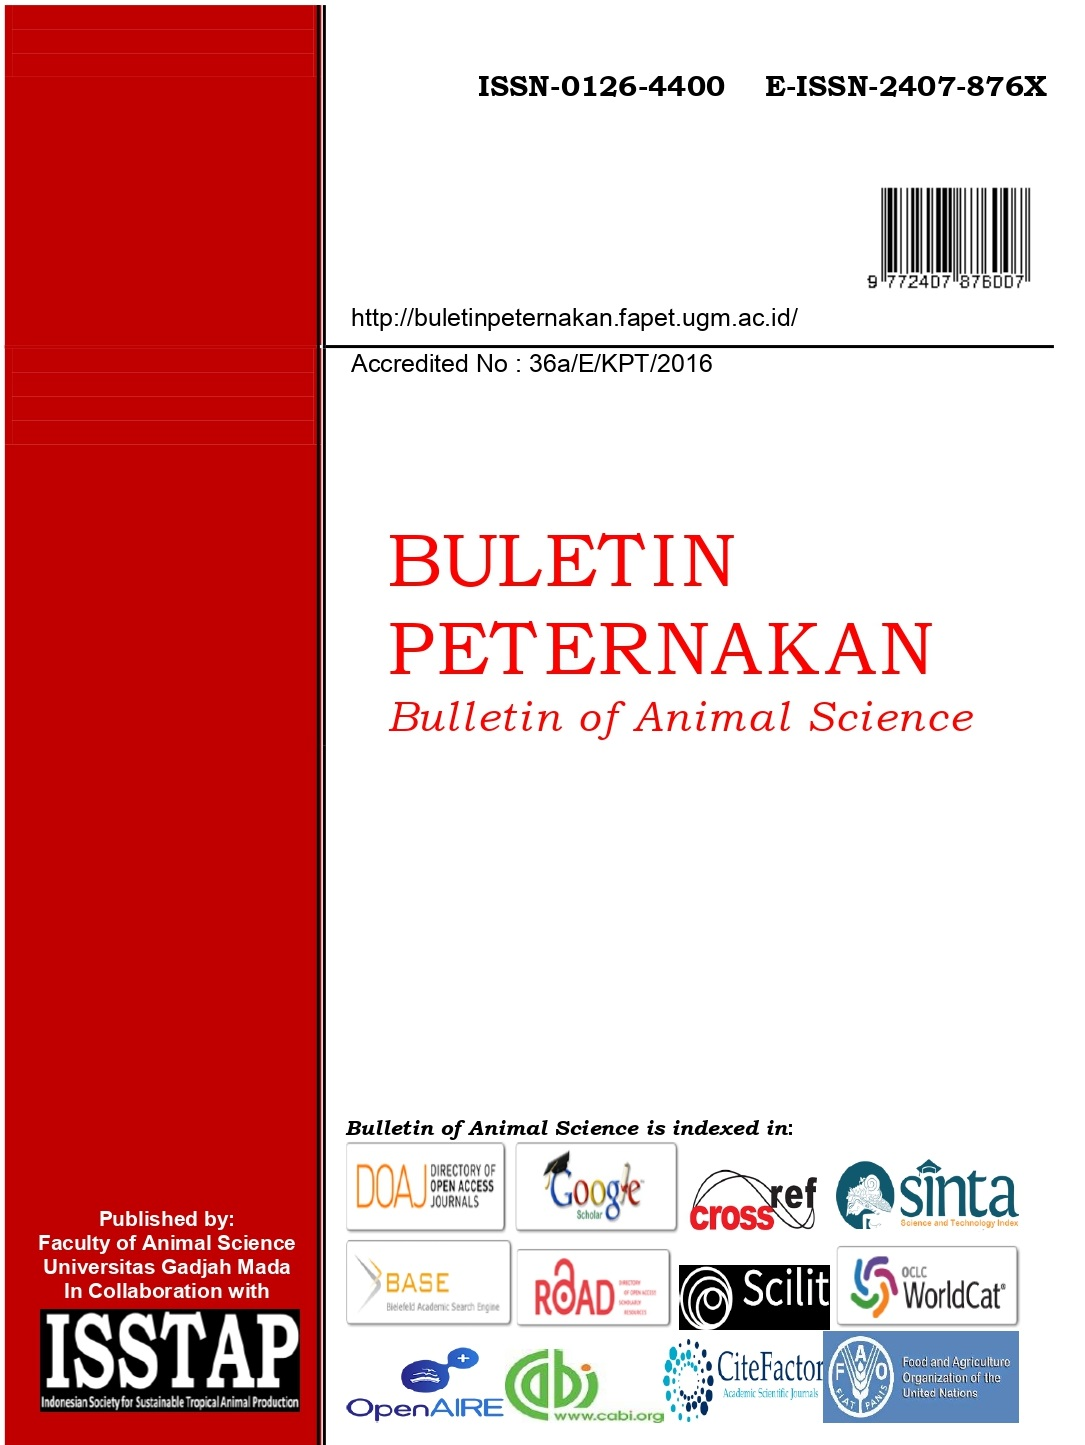 Buletin Peternakan (Bulletin of Animal Science)